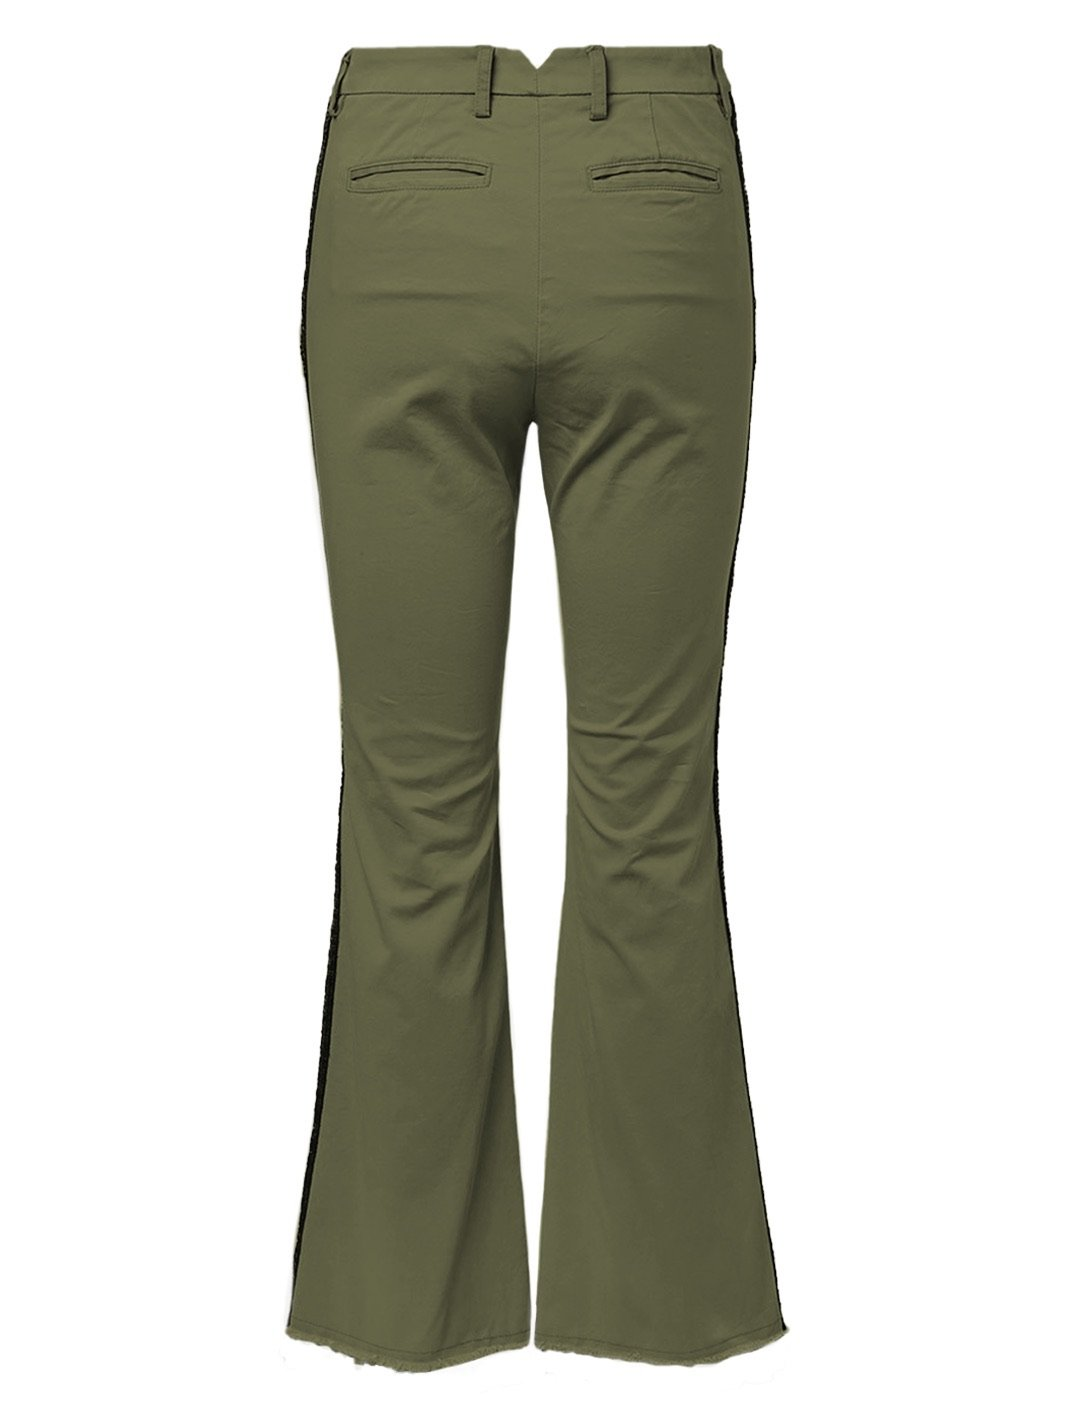 Sequin Side-Stripes Gabardine Pants Star - The Bobby Boga